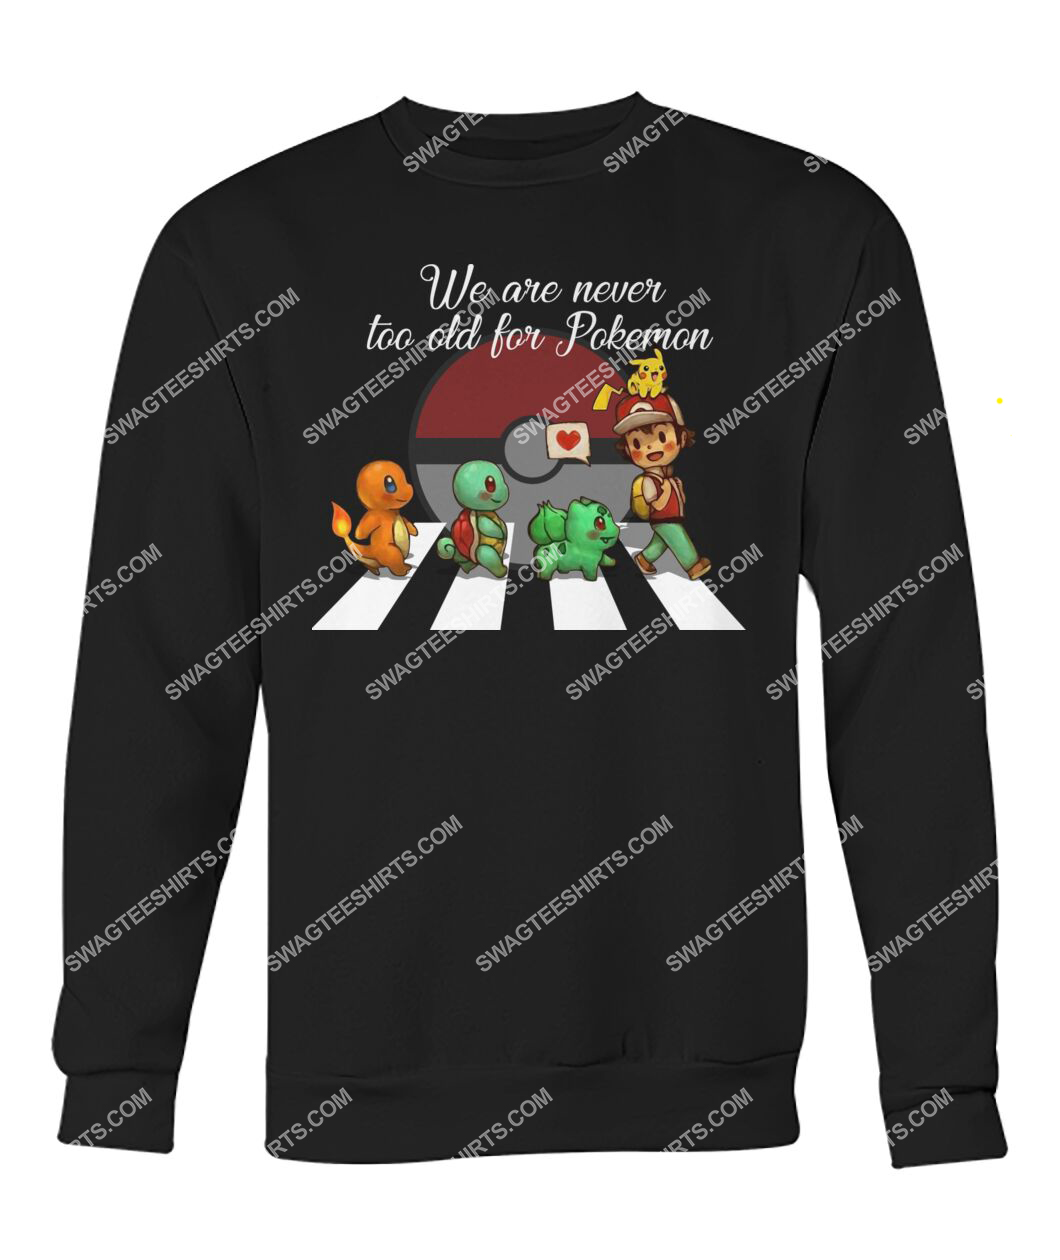 we are never too old for pokemon abbey road sweatshirt 1